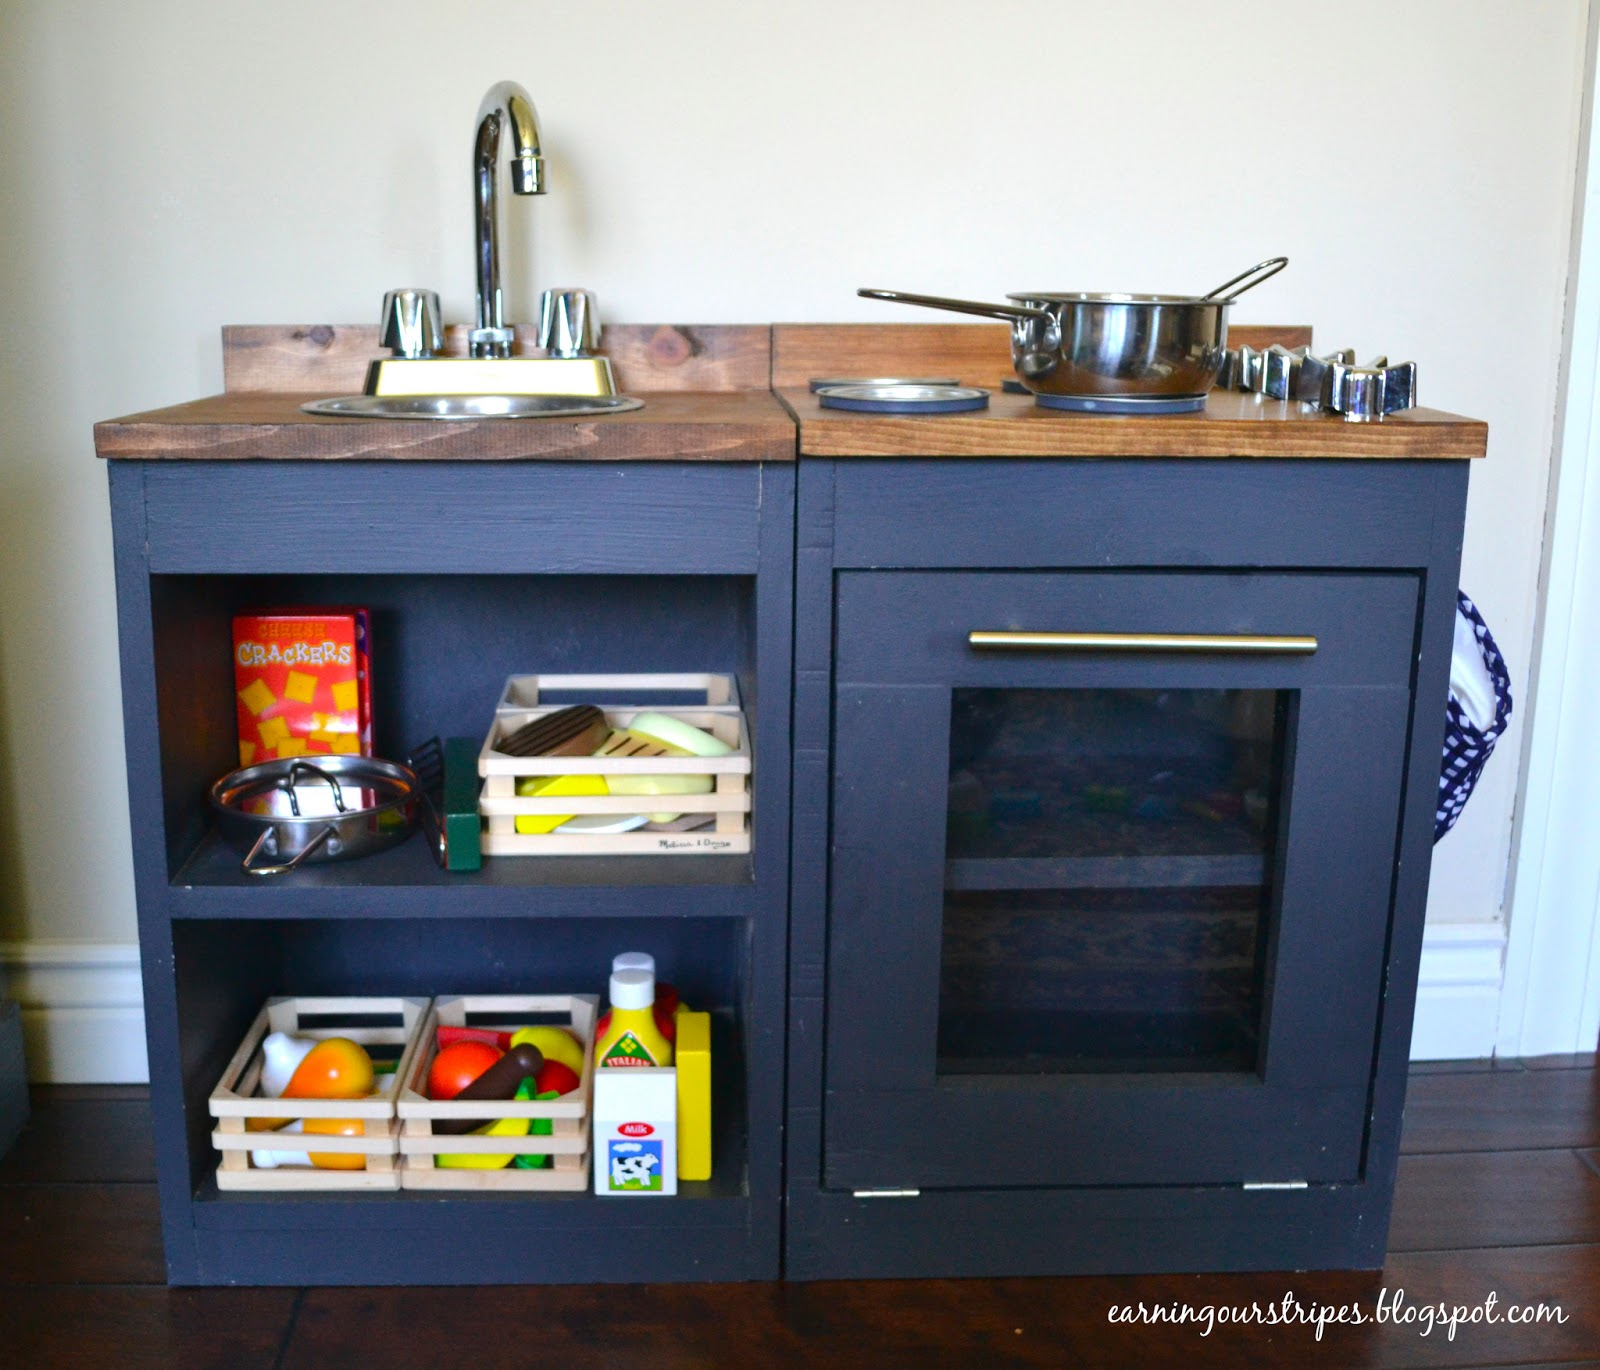 Earning our stripes diy play kitchen for Diy play kitchen ideas